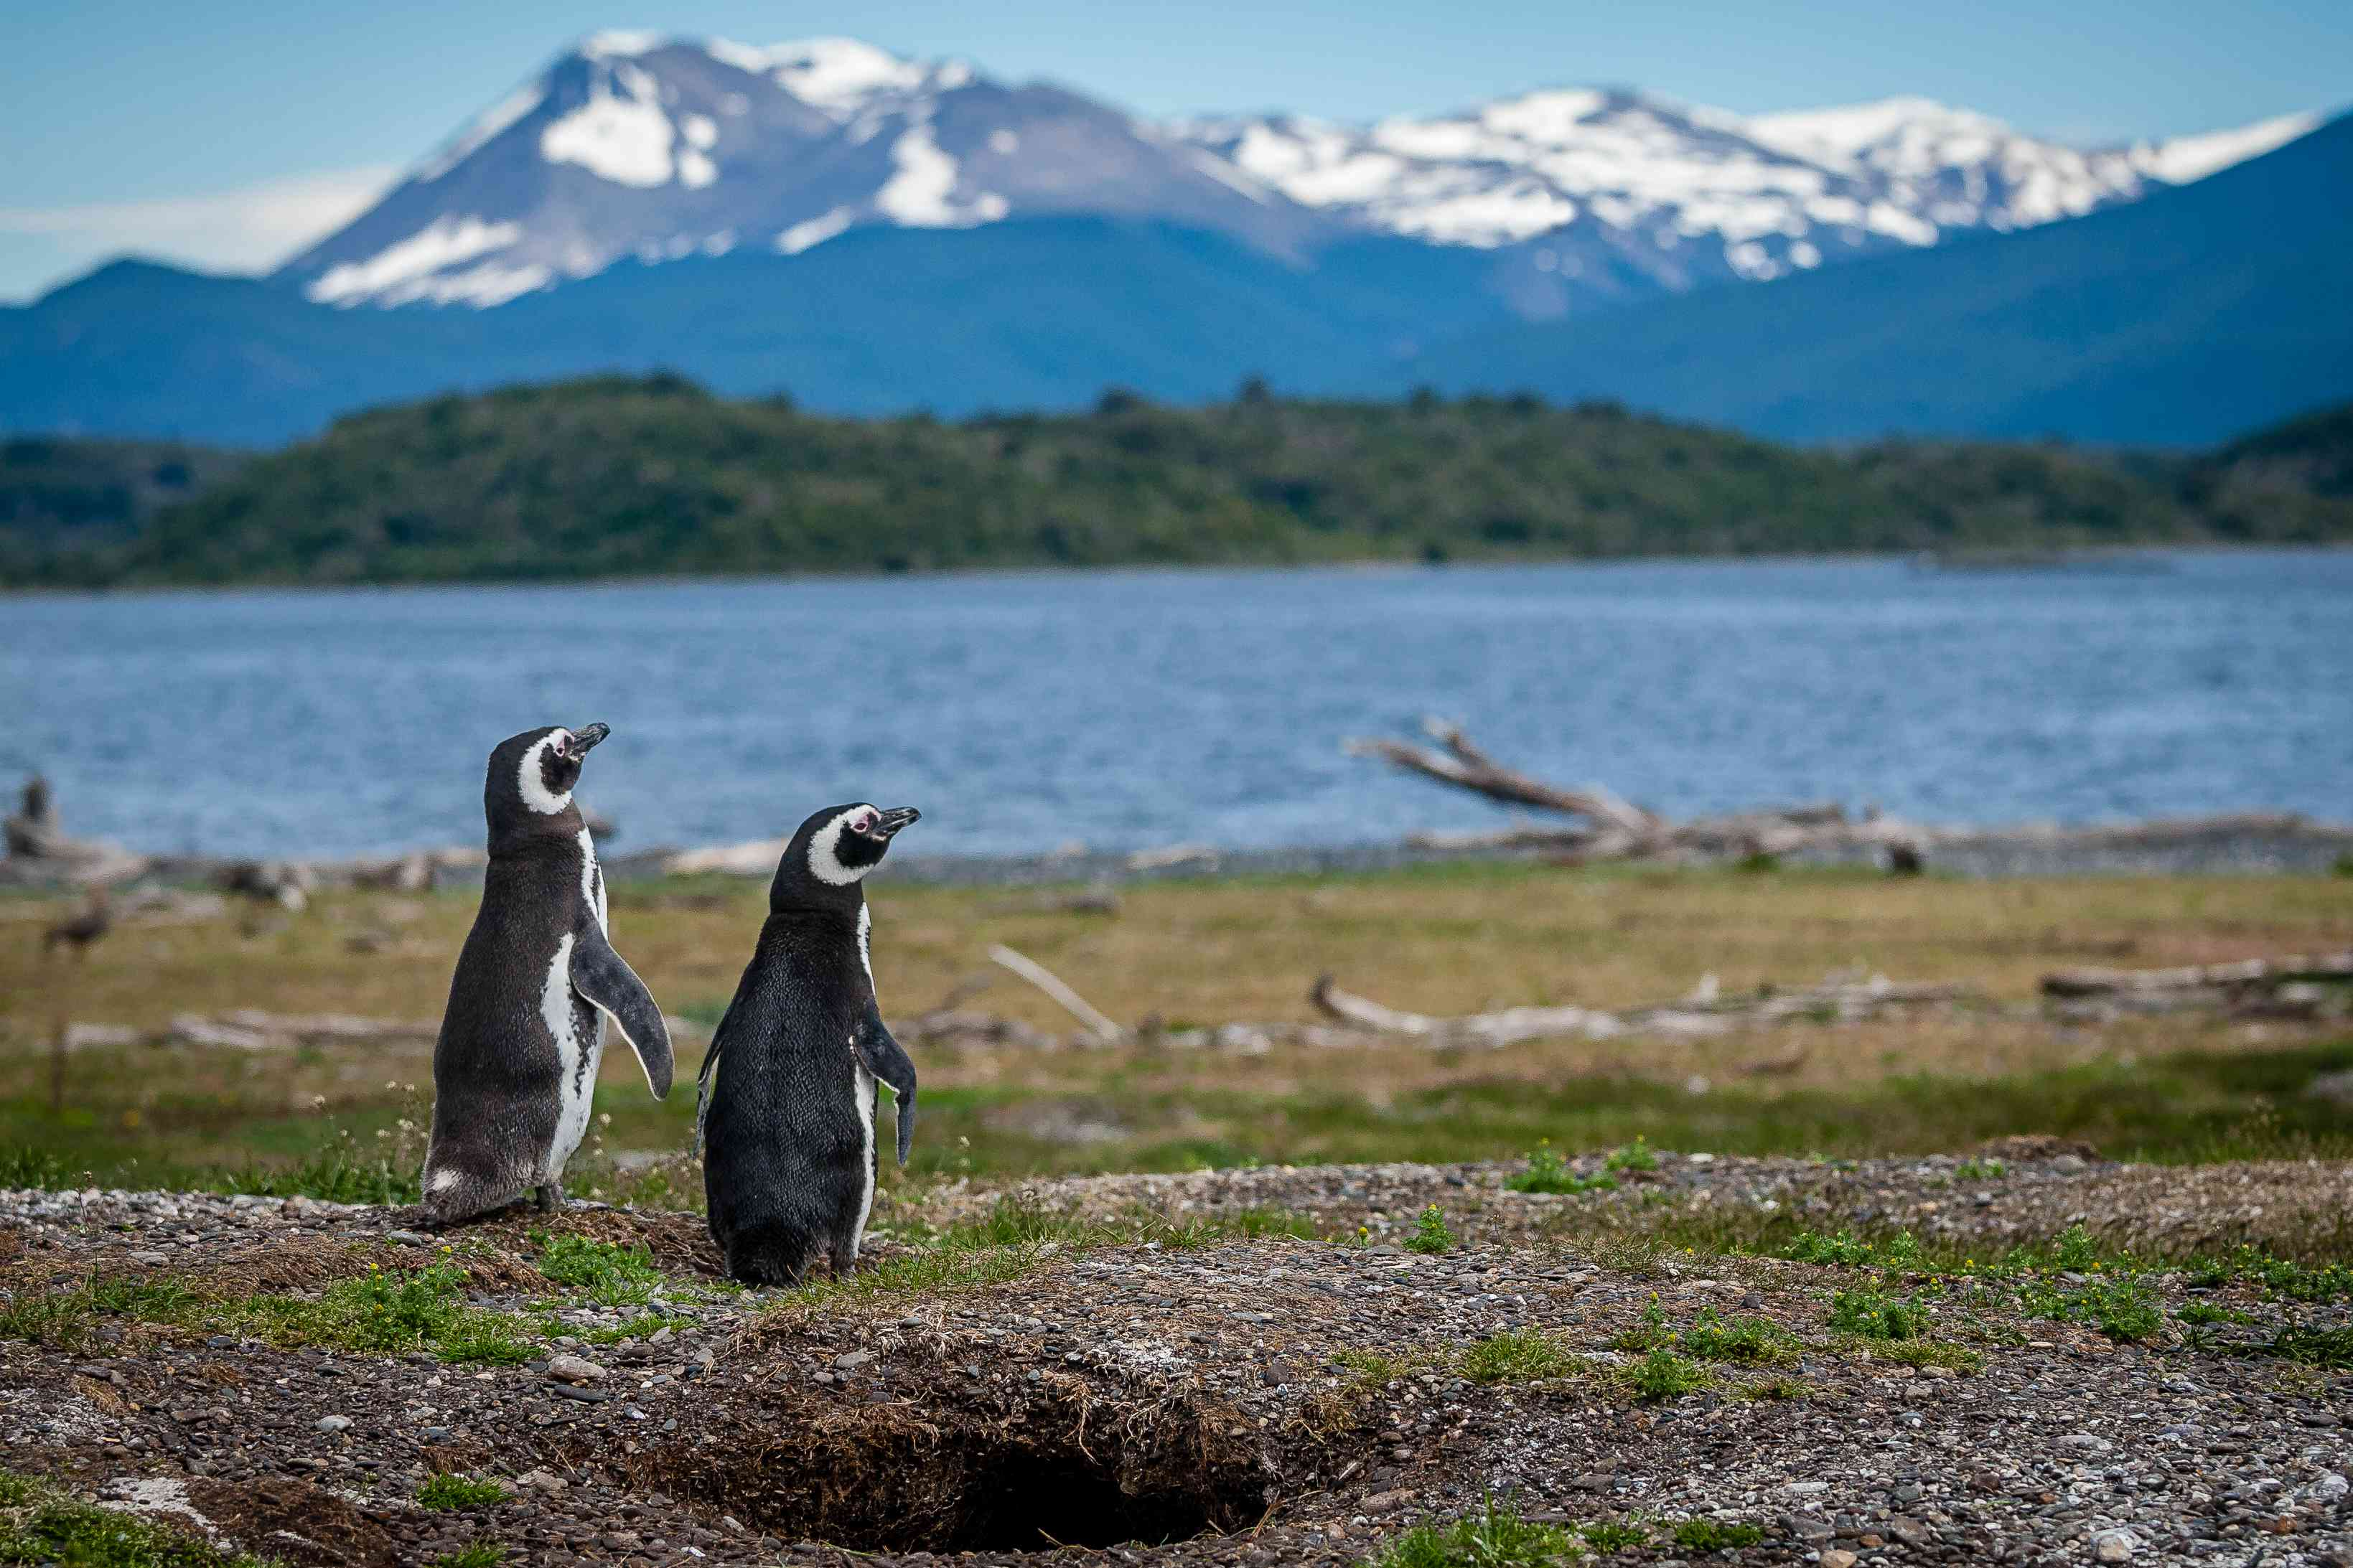 Two magellanic penguins sit on a grassy coastline in front of a body of water and mountain views